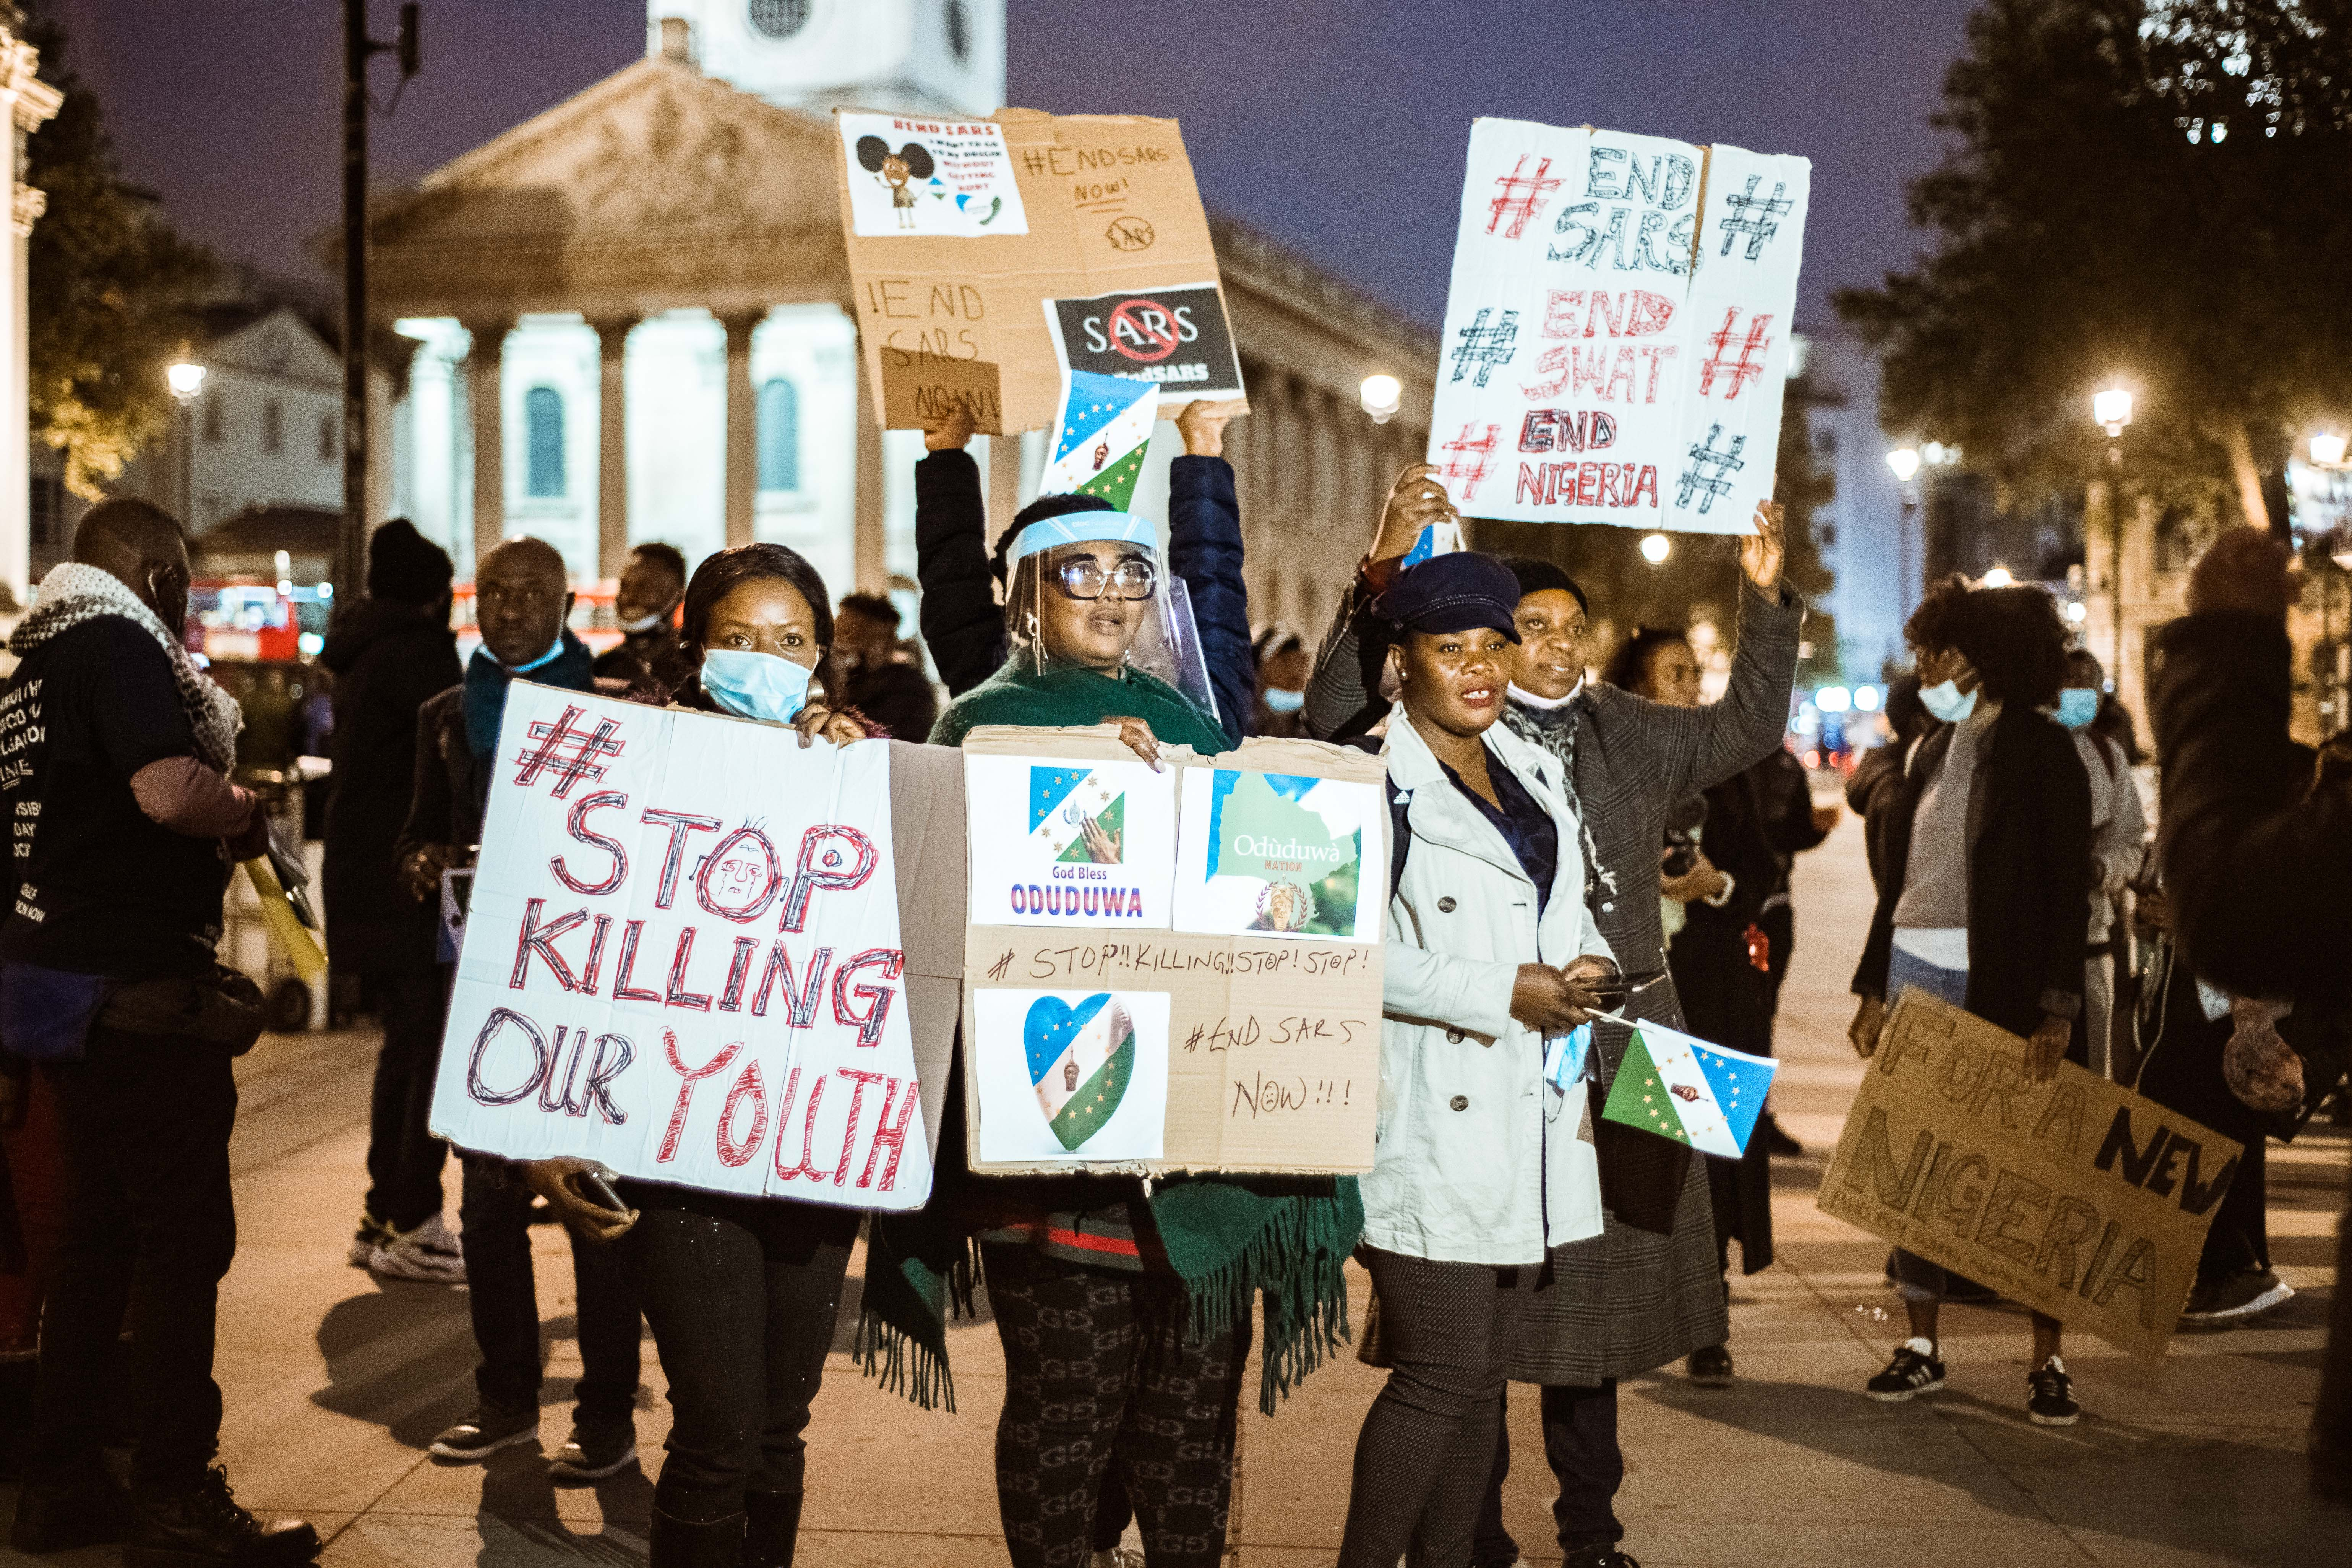 LONDON, ENGLAND - OCTOBER 18:  Demonstrators at the candlelight procession to remember victims of SARS and those assaulted by Nigeria Police gather at Trafalgar Square on October 18, 2020 in London, England. They echo the ongoing #EndSARS protest movement against Nigeria's Special Anti-Robbery Squad, whose officers have been accused of indiscriminate arrests, extortion, and extrajudicial killings. Nigeria's President Muhammadu Buhari recently disbanded the force, replacing it with a new division named SWAT (Special Weapons and Tactics), but the makeover has not placated the protesters.  (Photo by Joseph Okpako/Getty Images)